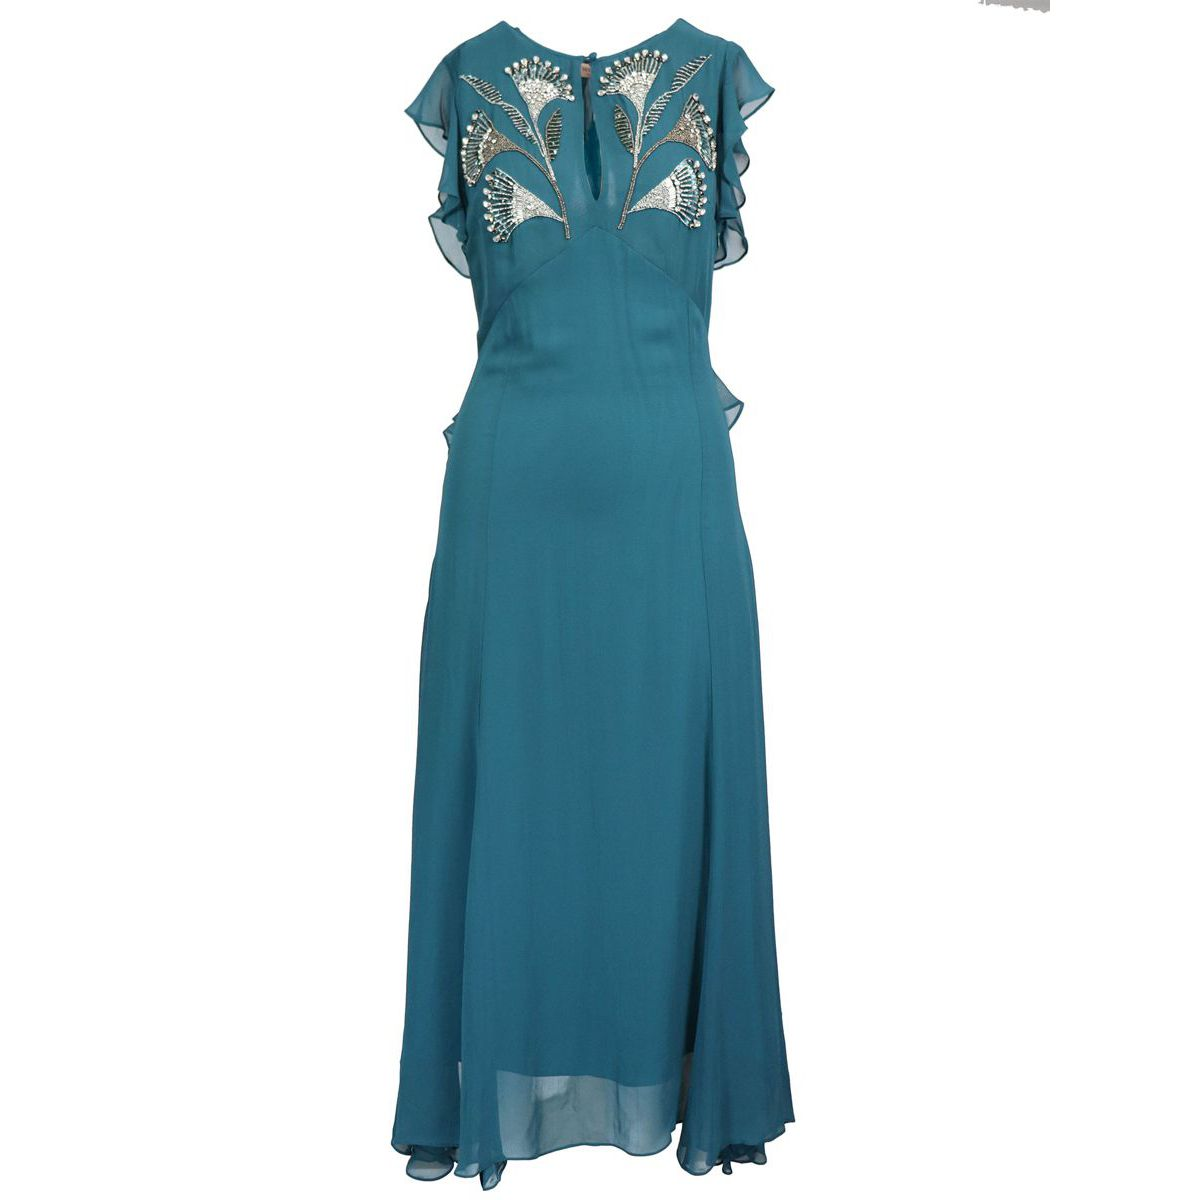 Long georgette dress with floral embroidery and details Teal Twin-Set